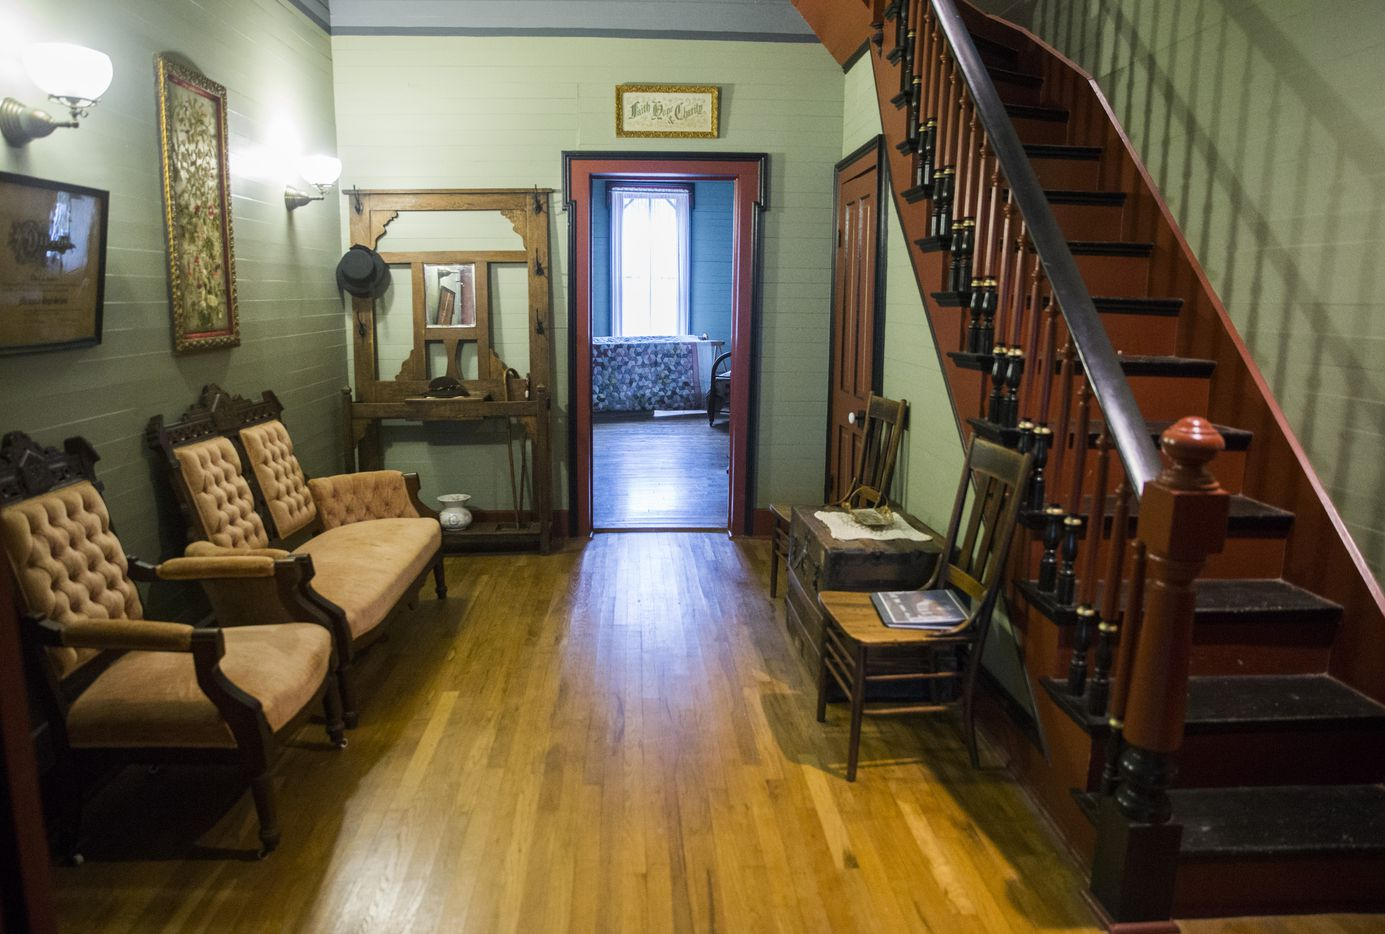 The first floor hallway inside the Lawrence House in the Opal Lawrence Historical Park in Mesquite. Members of the Lawrence family -- including three daughters who spent their entire lives on this farming homestead -- lived there from 1874 to 1995.